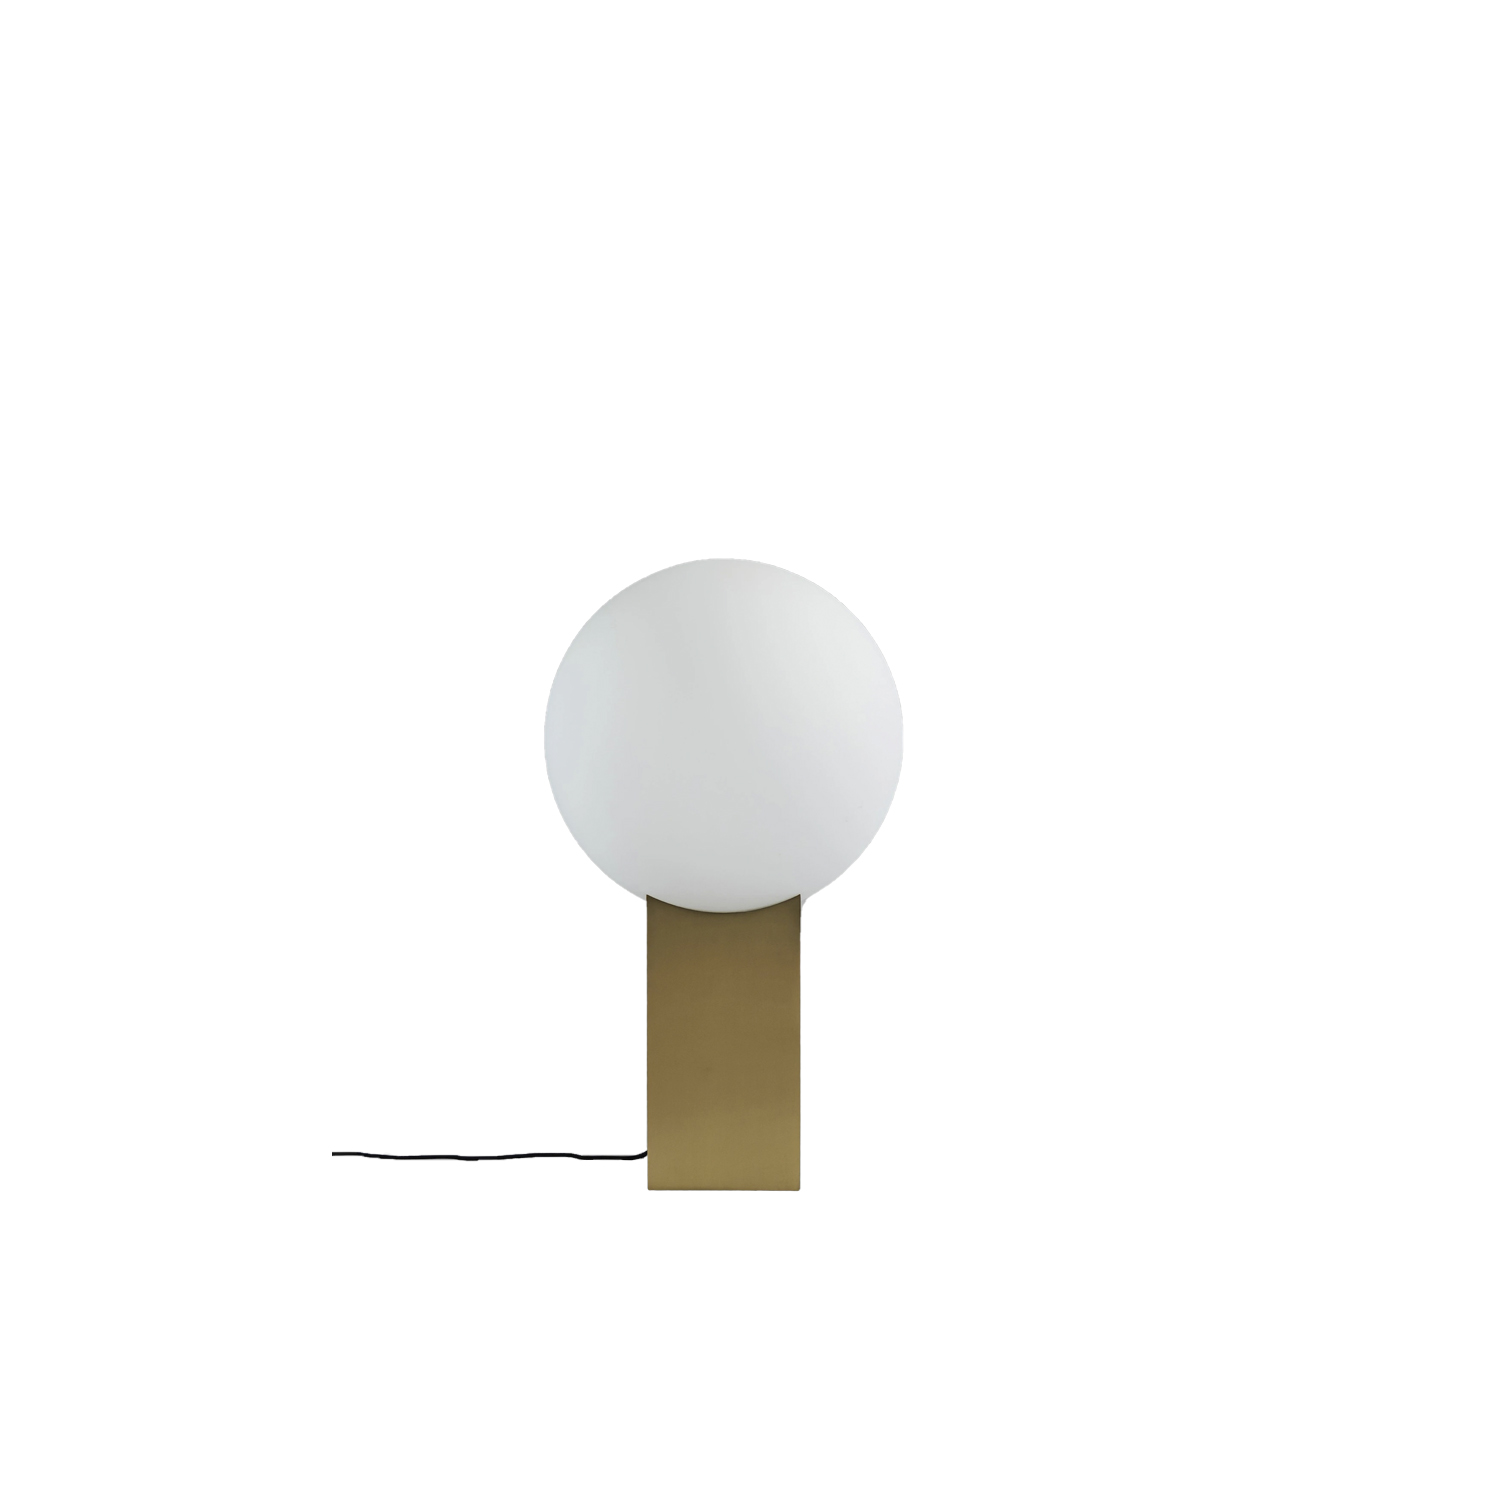 Hoop Floor Lamp - So simple, yet so sophisticated and uncompromised. It is hard to believe that a simple shape can create a stunning and art like lamp, but the Hoop series gives you just this with an almost naive essence of geometry and form.   The silhouette itself can light up even the darkest places and by offering the Hoop lamps in both brass and bronze it is possible to create two unique atmospheres with the same lamp.  | Matter of Stuff